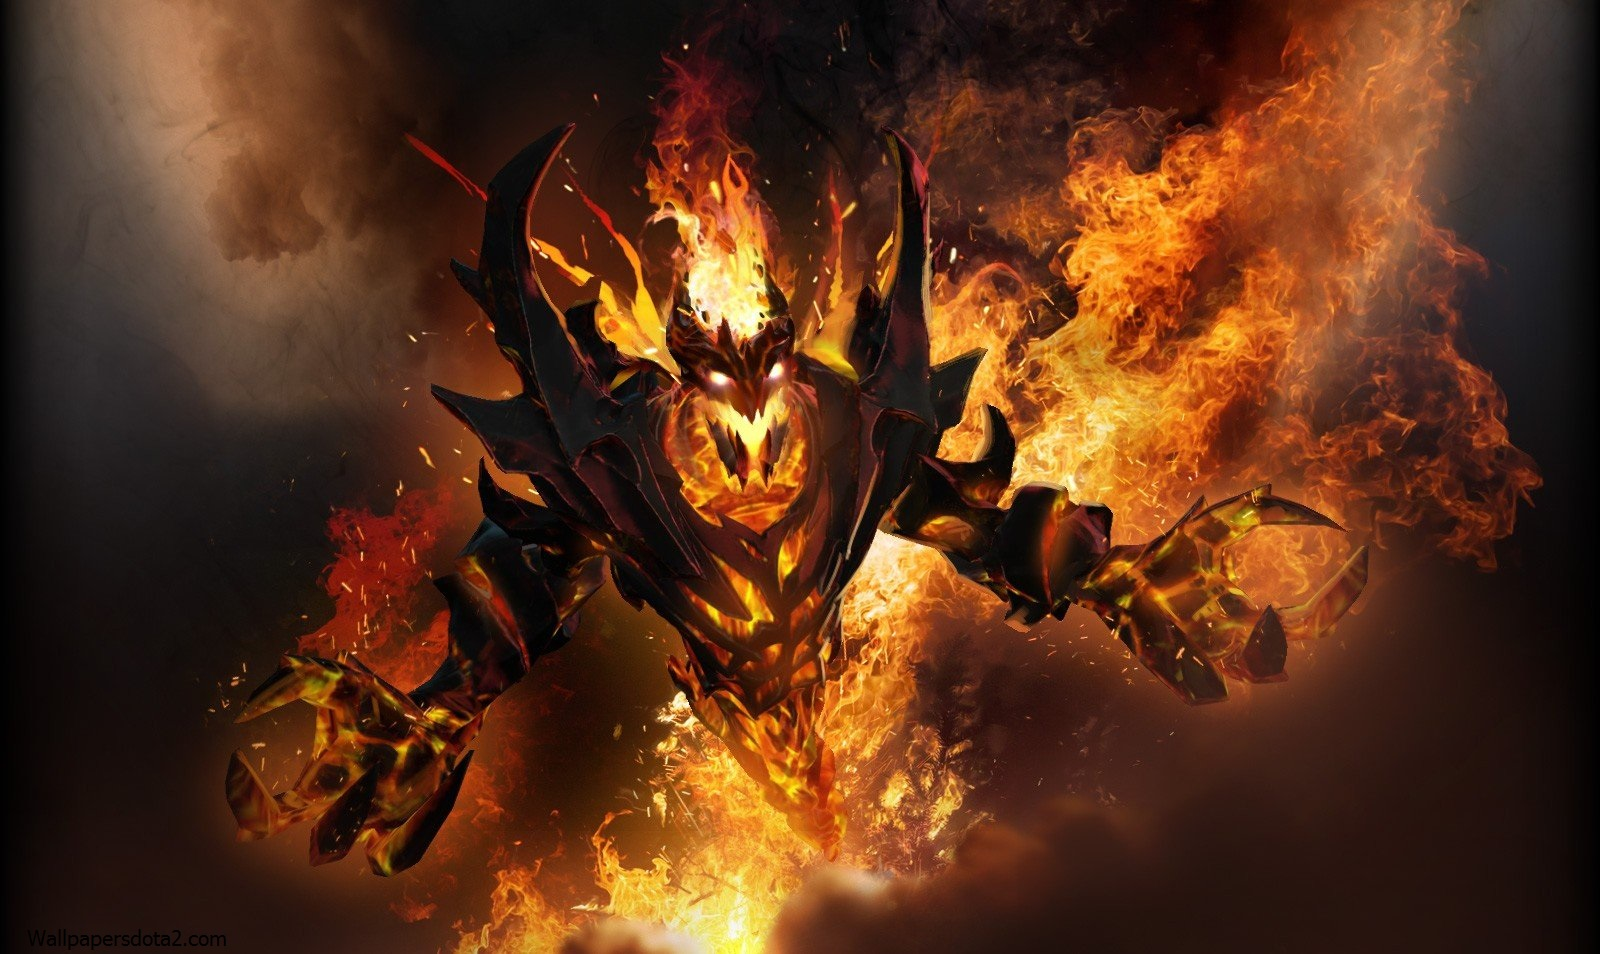 Dota 2 juggernaut wallpaper desktop background with high definition - Shadow Fiend Sf Arcana Wallpapers Hd Dota 2